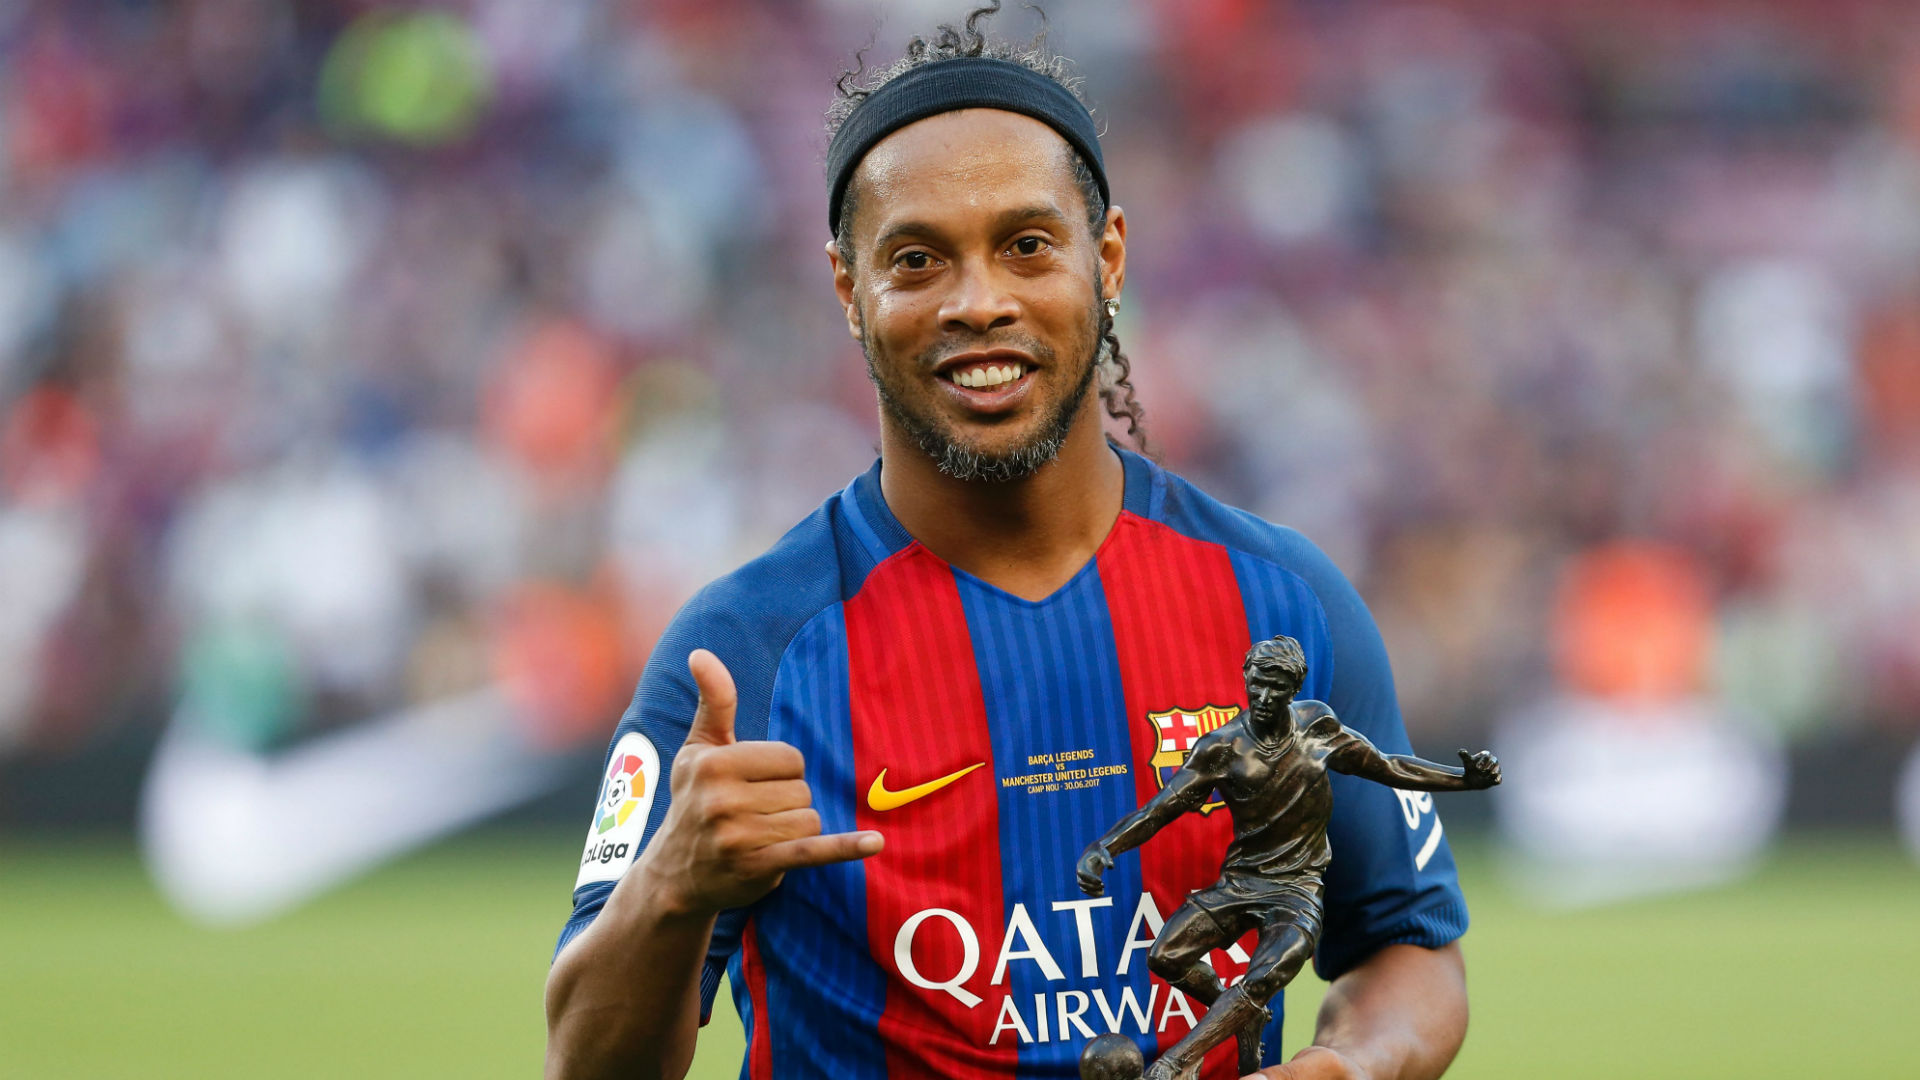 Ronaldinho will not participate in the World Cup in South Africa 76